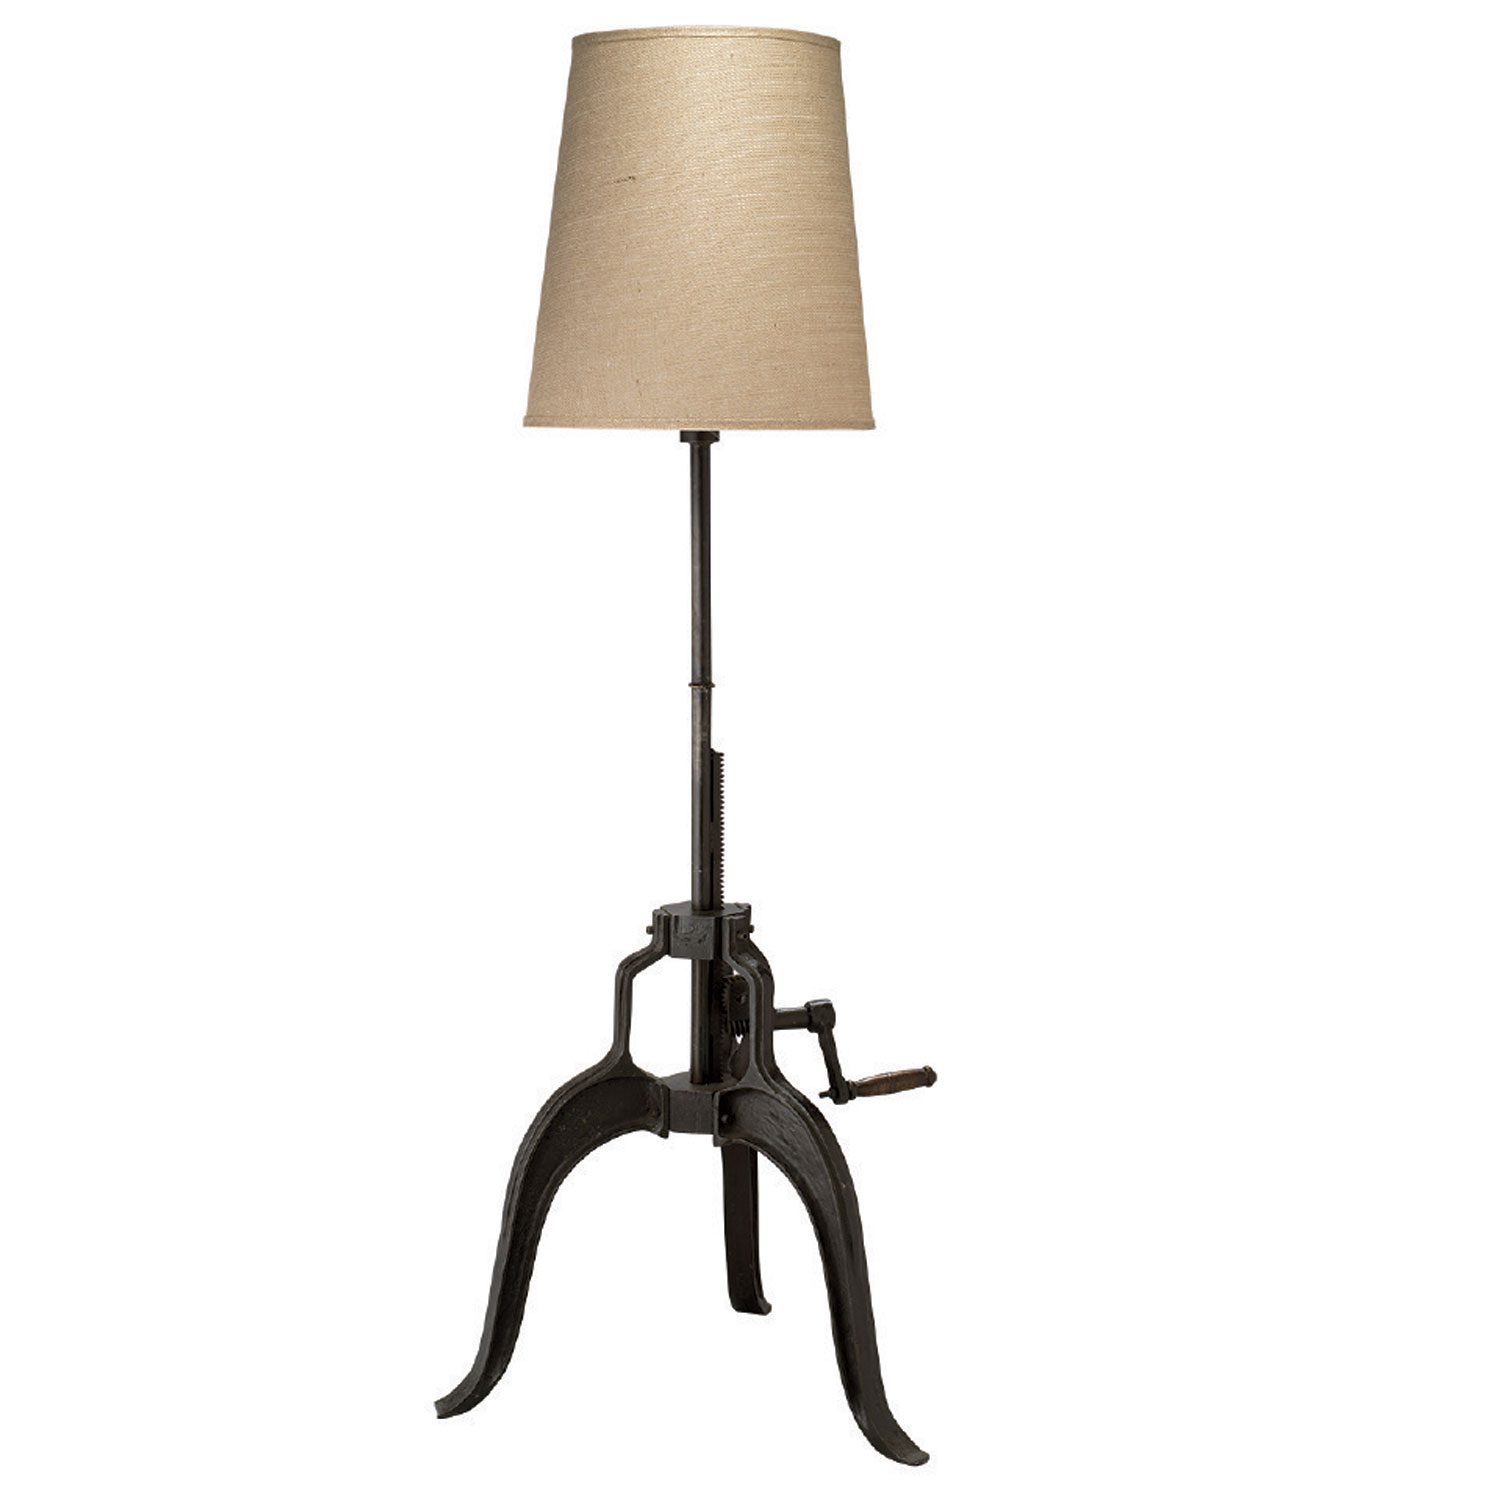 lamp ing guide bellacor industrial jamie yound tall corner accent table aged iron and rich patina metals hallmarks the look target chest drawers lawn chairs barn door bookcase